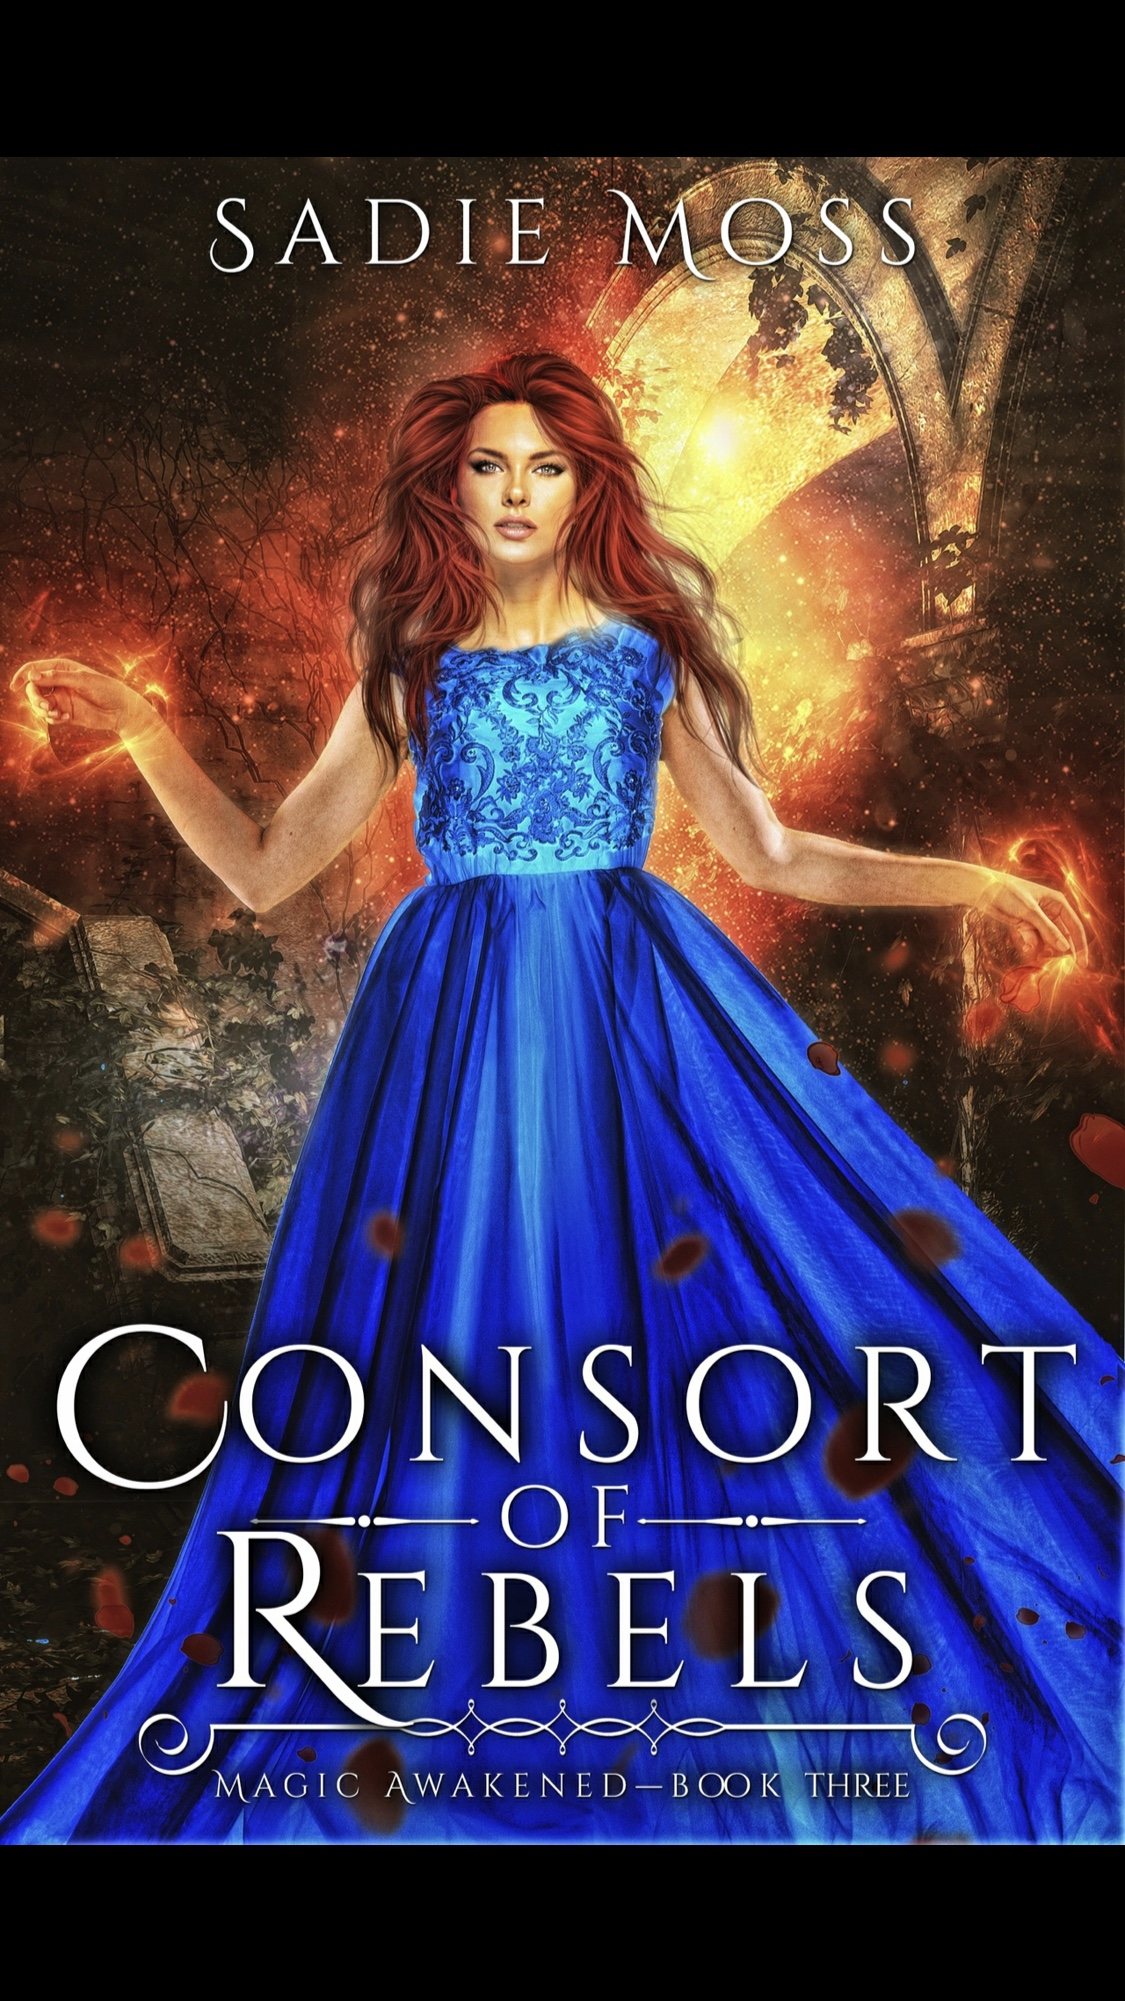 Consort of Rebels by Sadie Moss - Book Review #RH #PNR #WhyChoose #Fantastic #trilogy #ParanormalRomance #SlowBurn